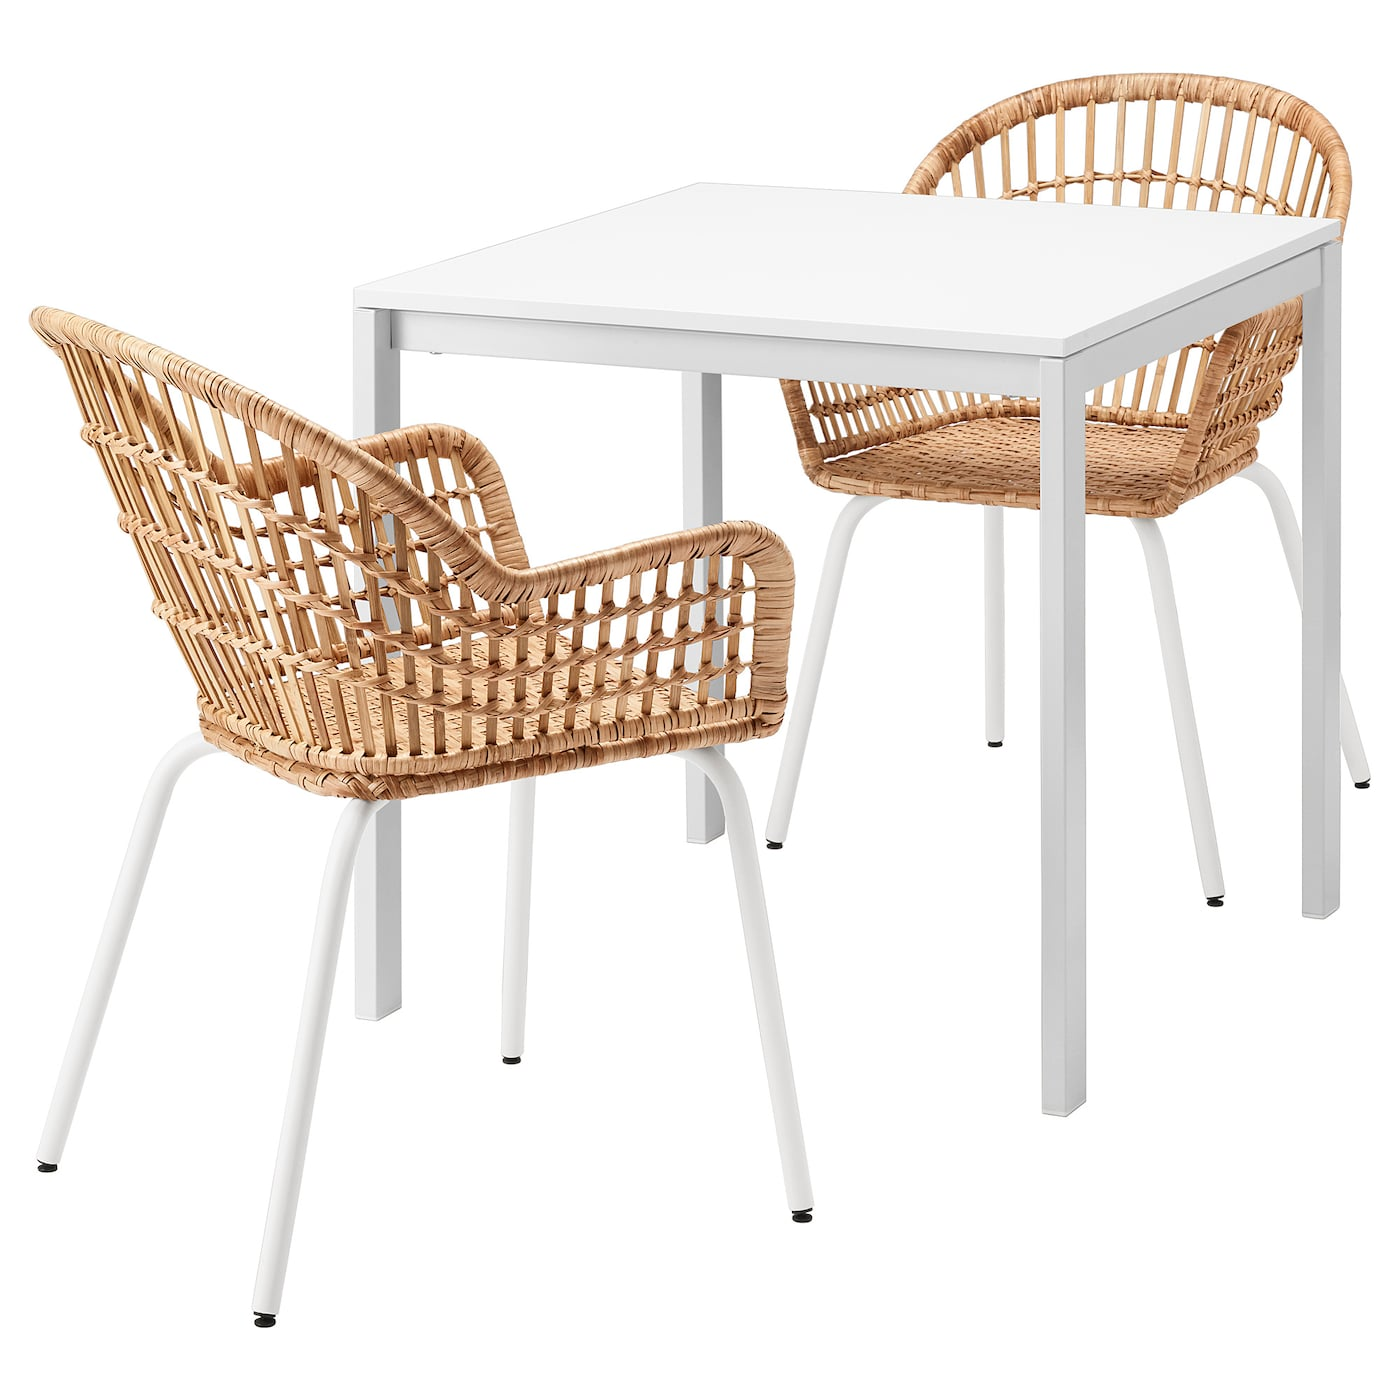 MELLTORP NILSOVE Table And 2 Chairs White Rattan